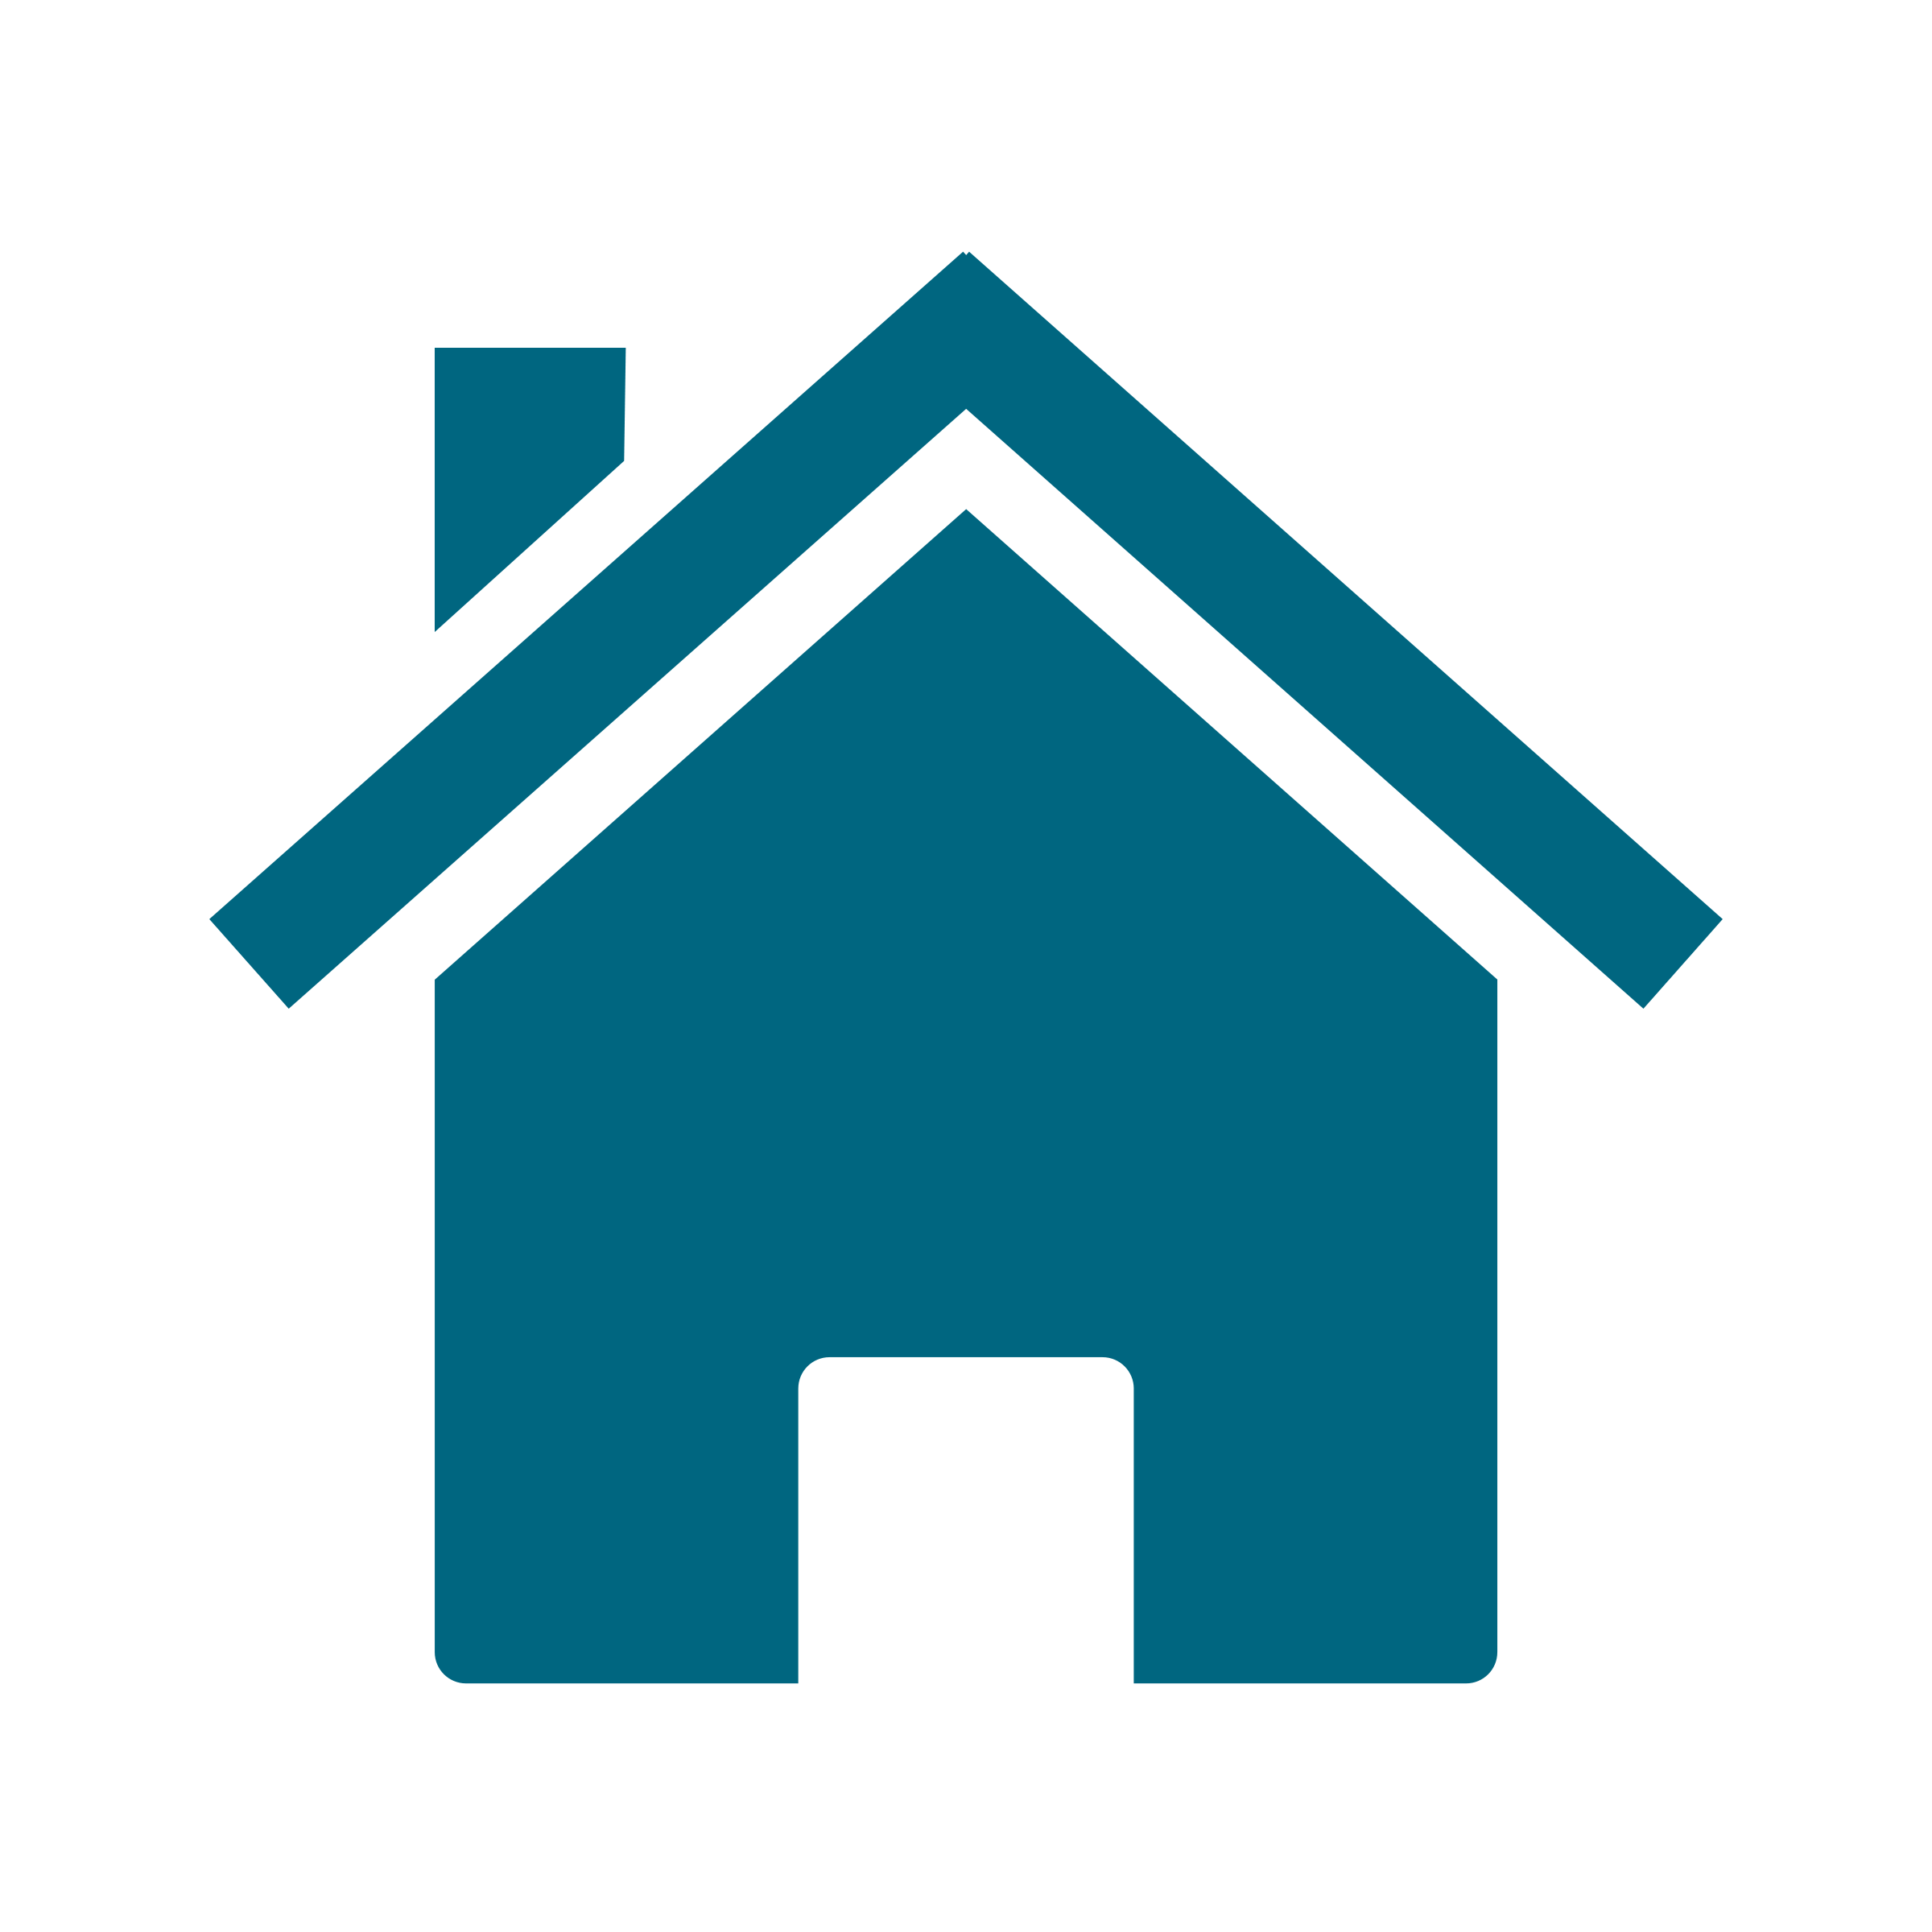 Houses PNG HD - 144574